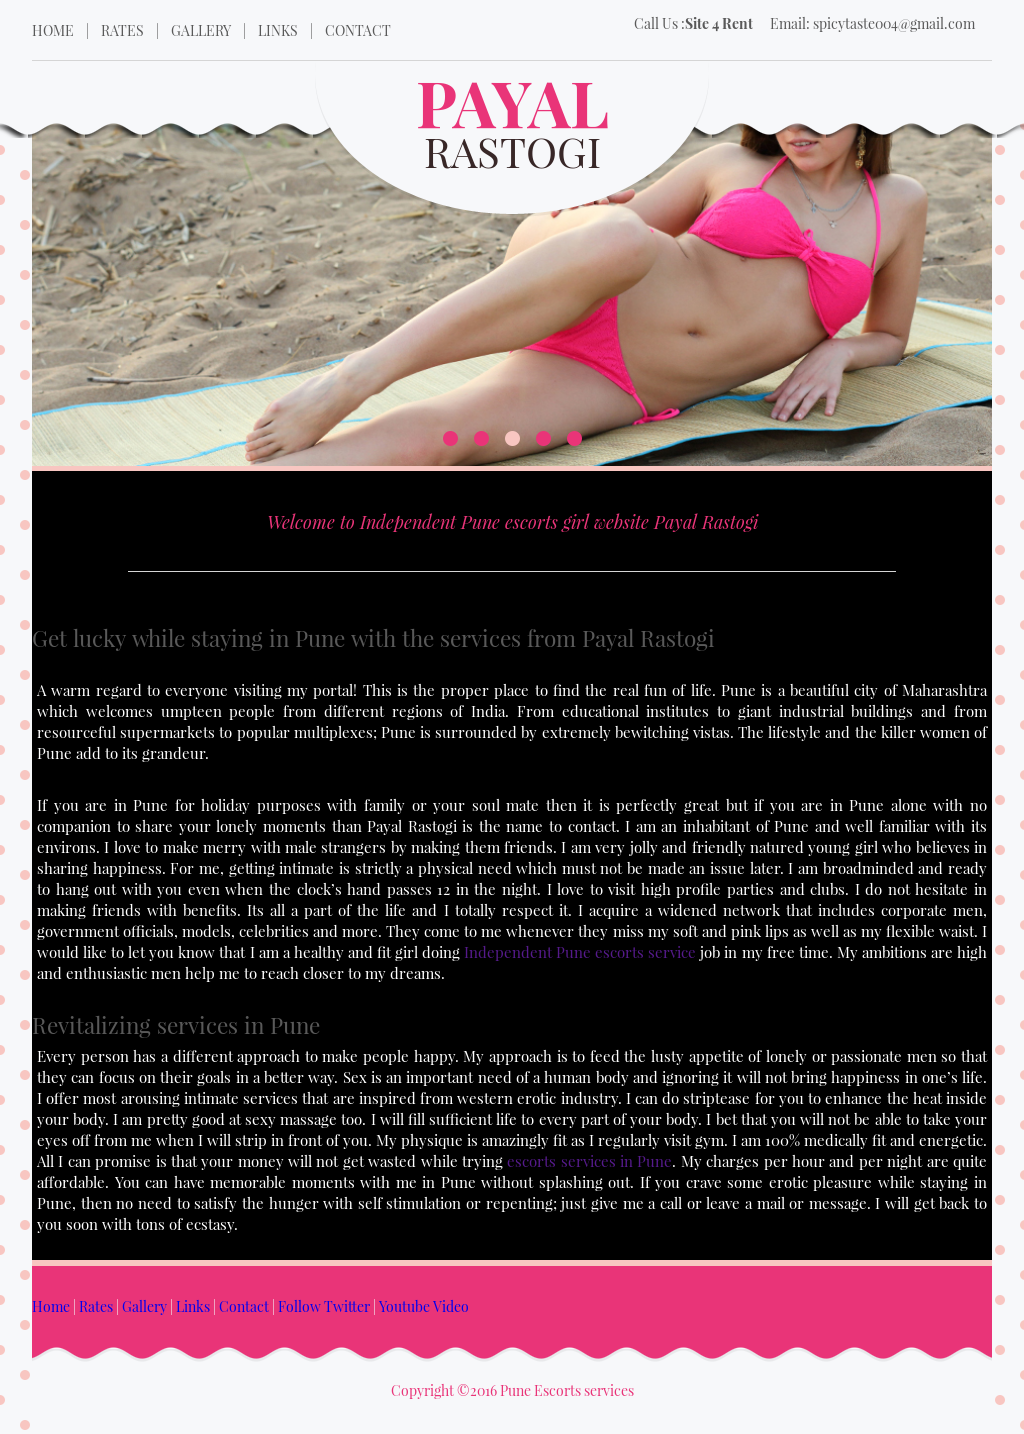 Concurrence escort inependent gallery faq rates contact